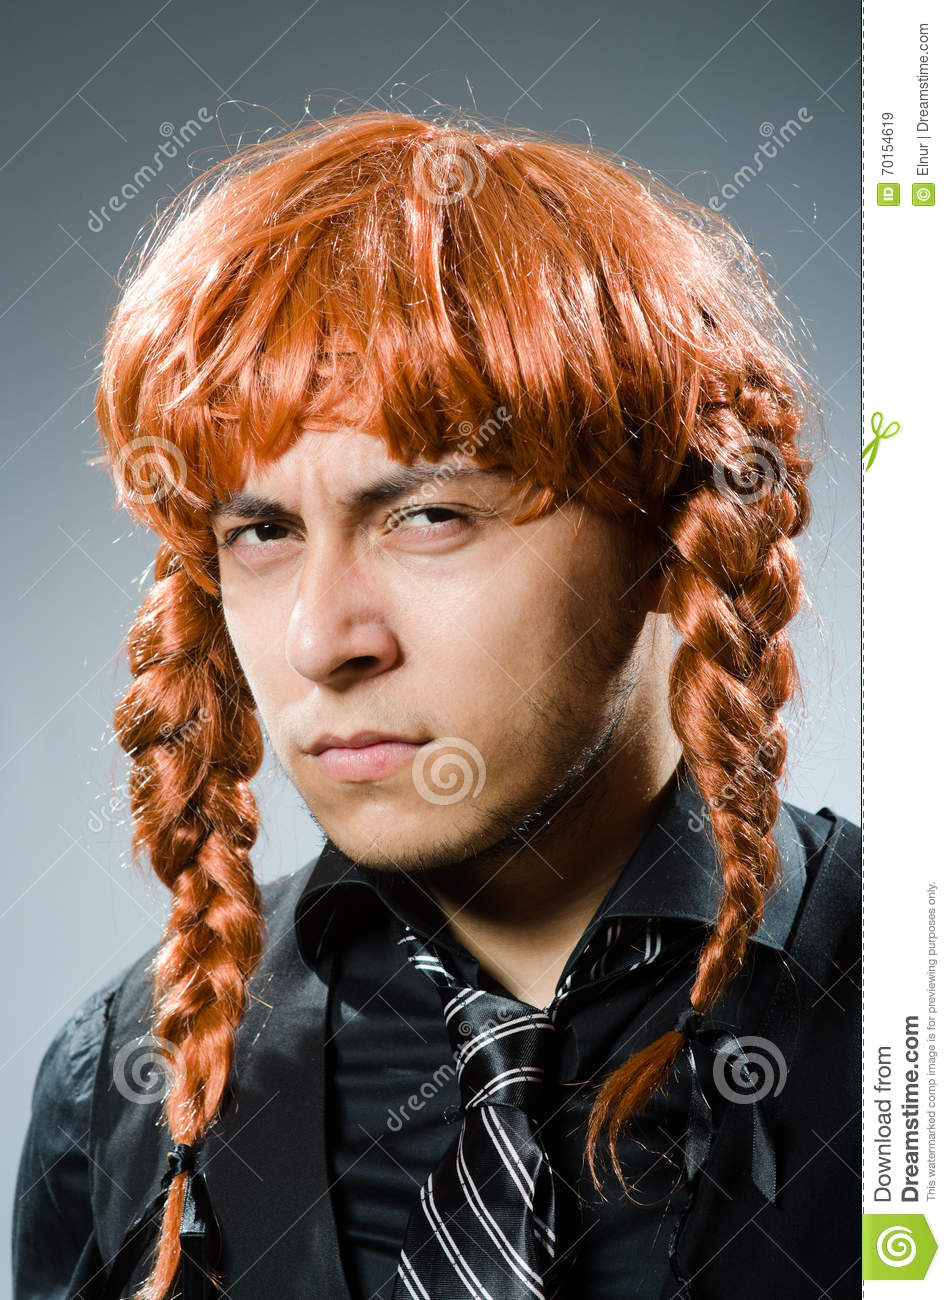 The Funny Man With Red Hair Wig Stock Image - Image of plait c797b5744371